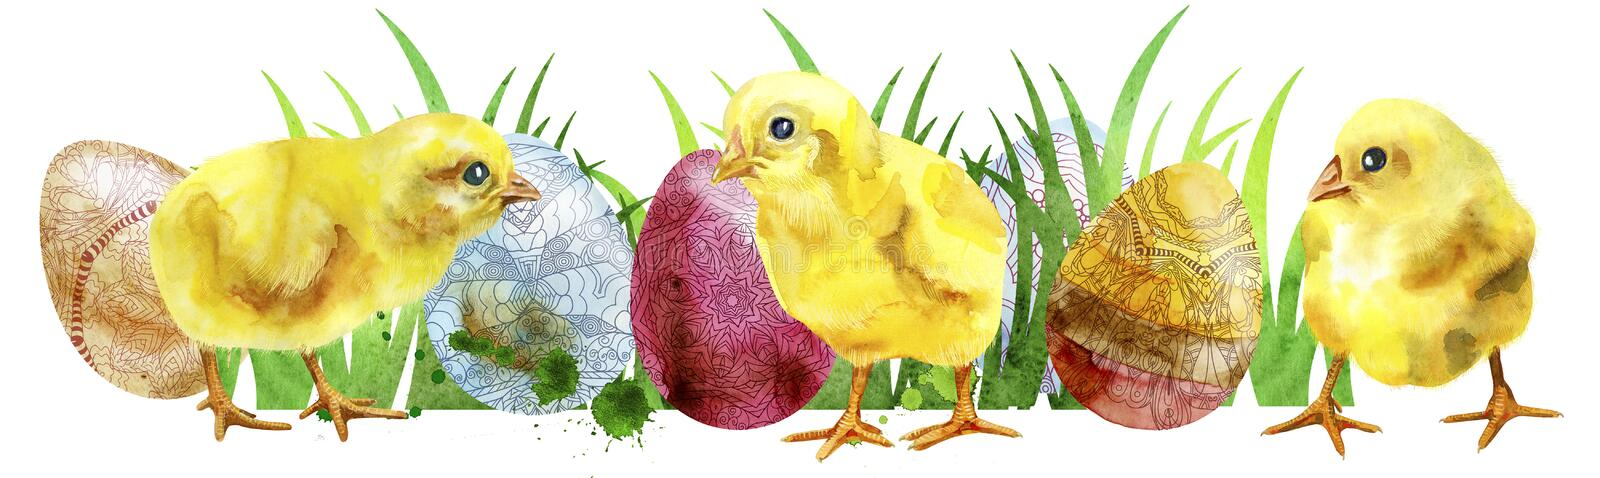 Watercolor Easter colored eggs and chickens. royalty free illustration